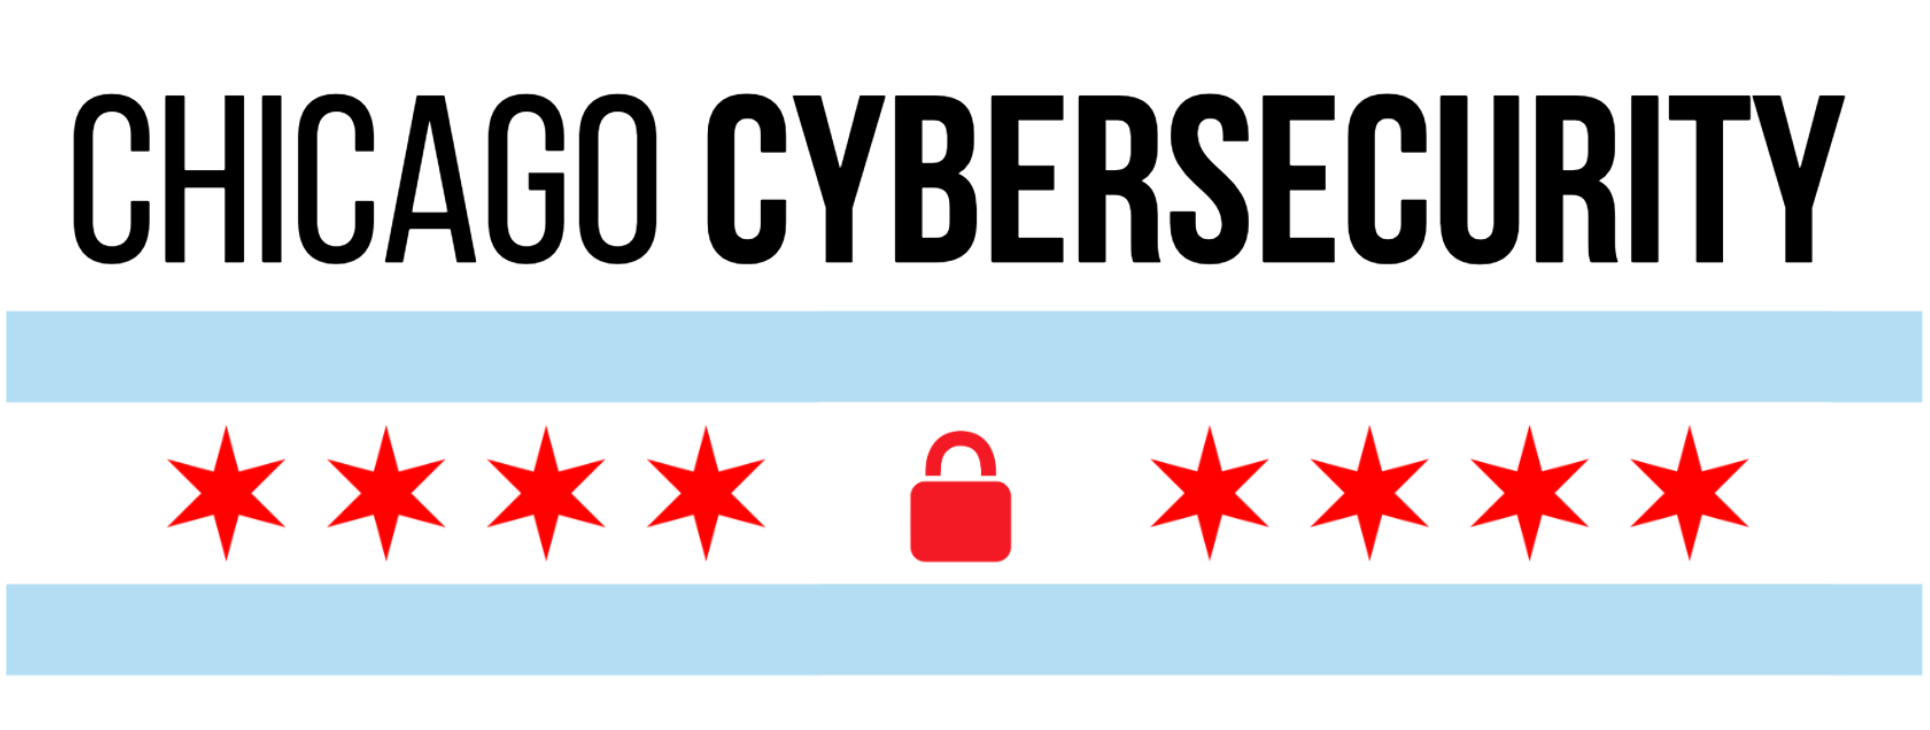 Chicago CyberSecurity